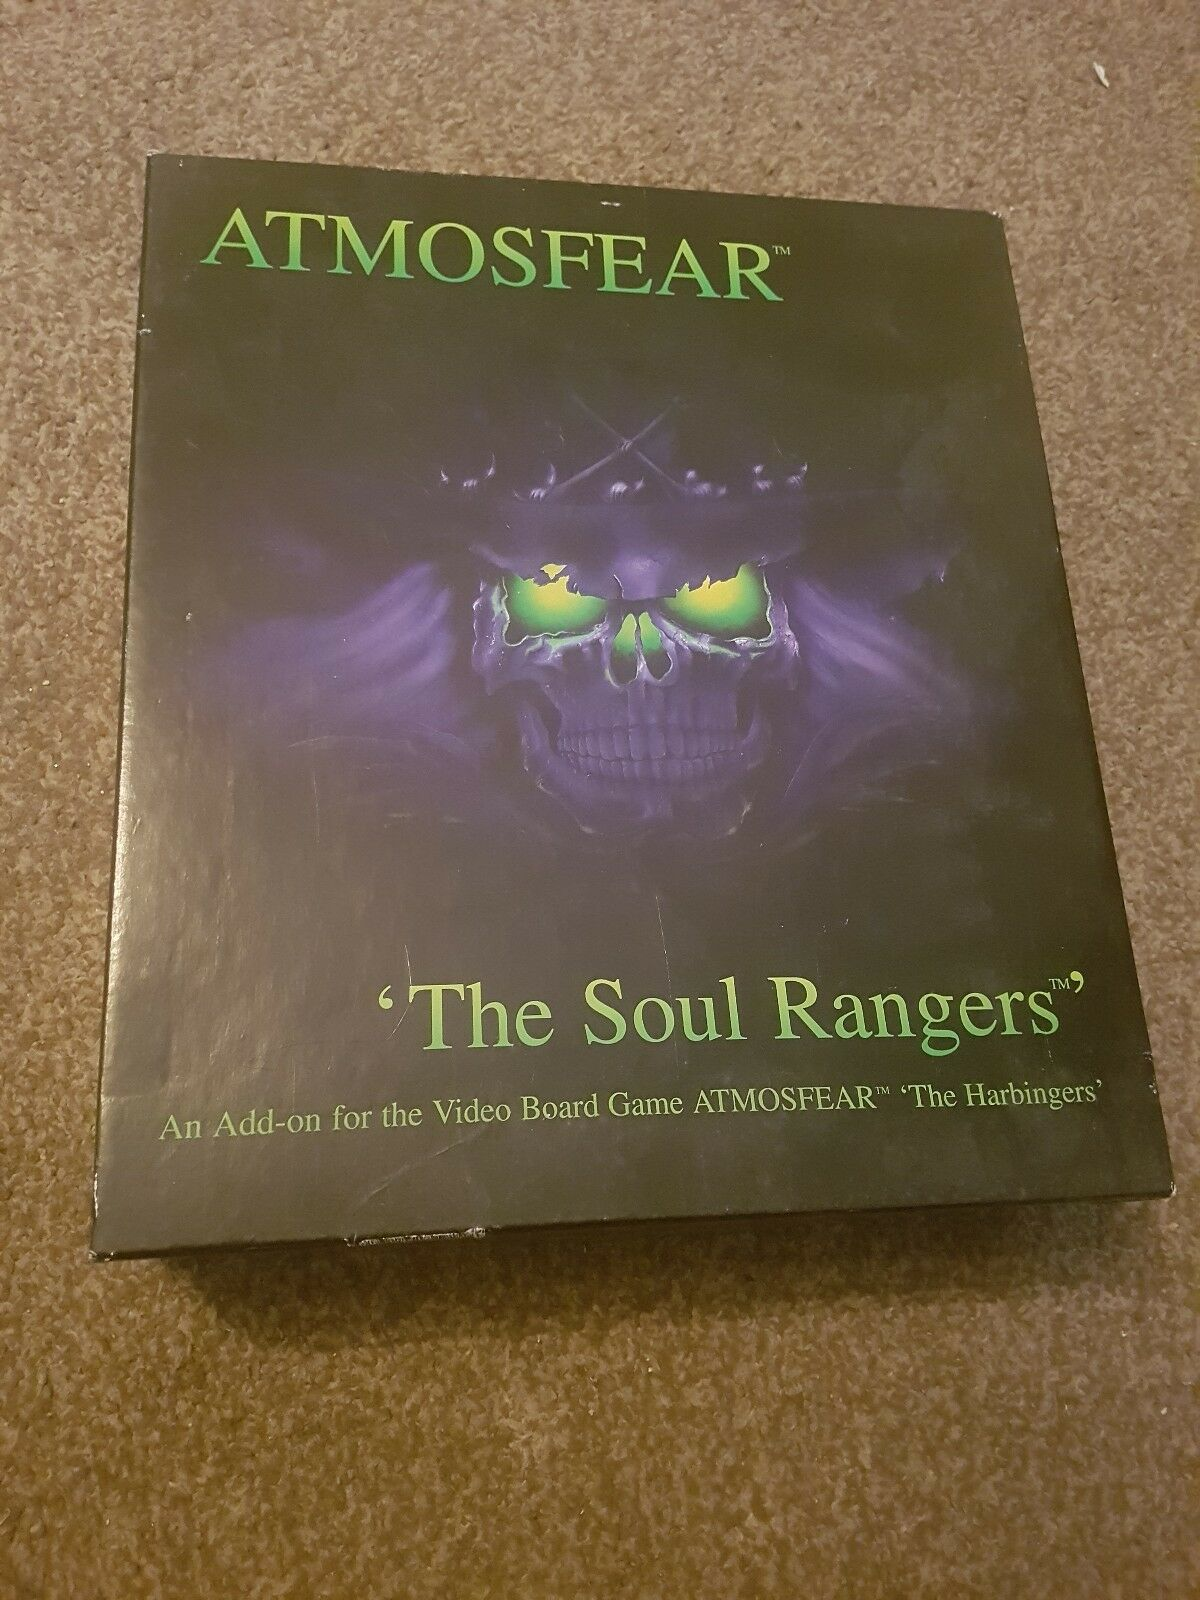 Atmosfear The Soul Rangers Video Board Game VHS Add On New And Unused Rare